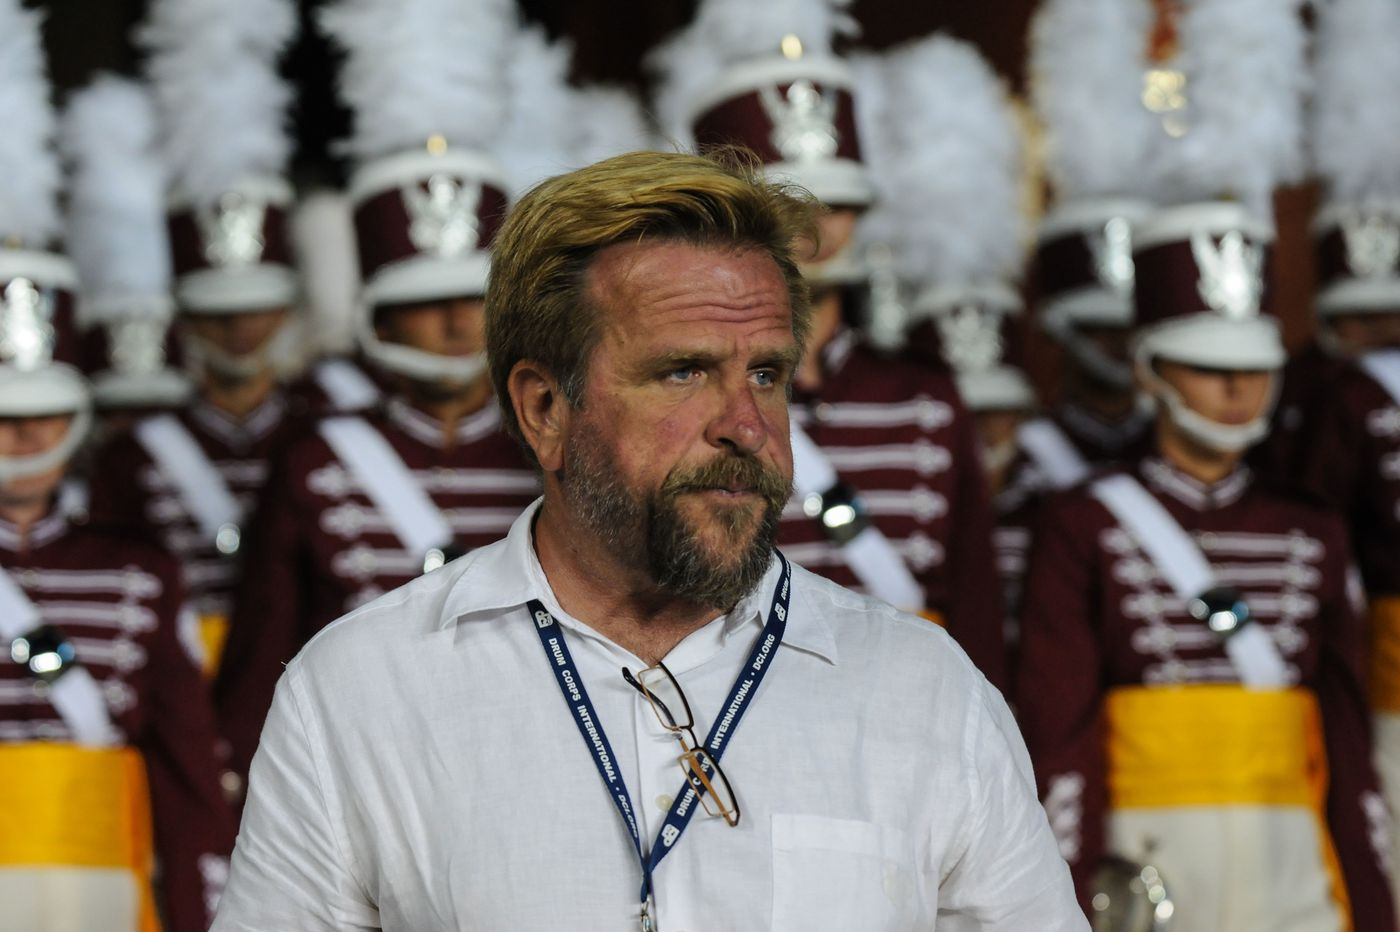 Former drum corps director George Hopkins charged with sexual assault